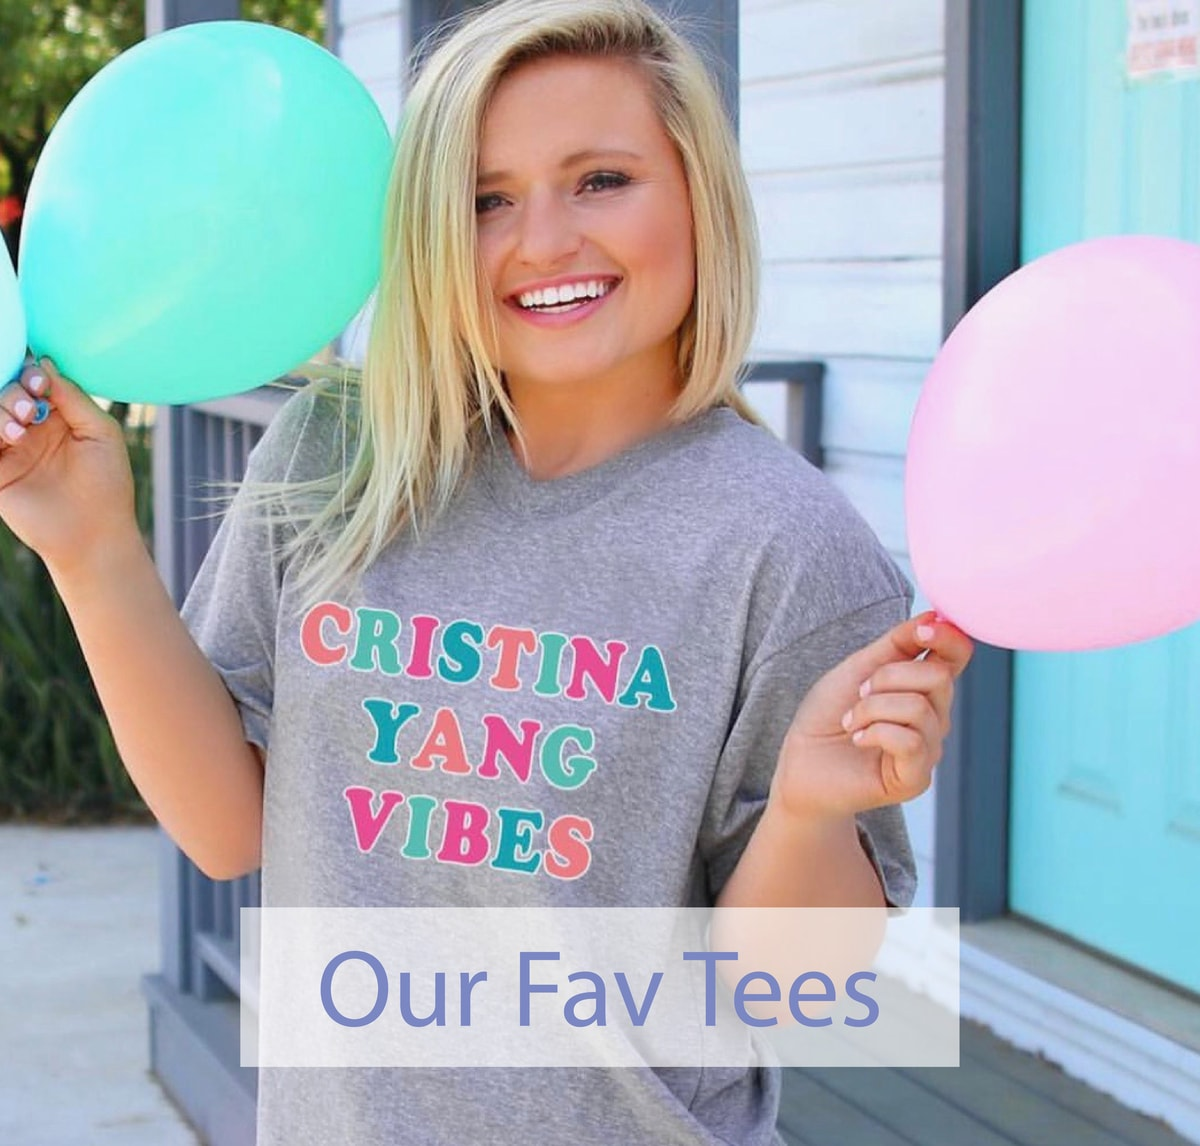 Our Fav Tees